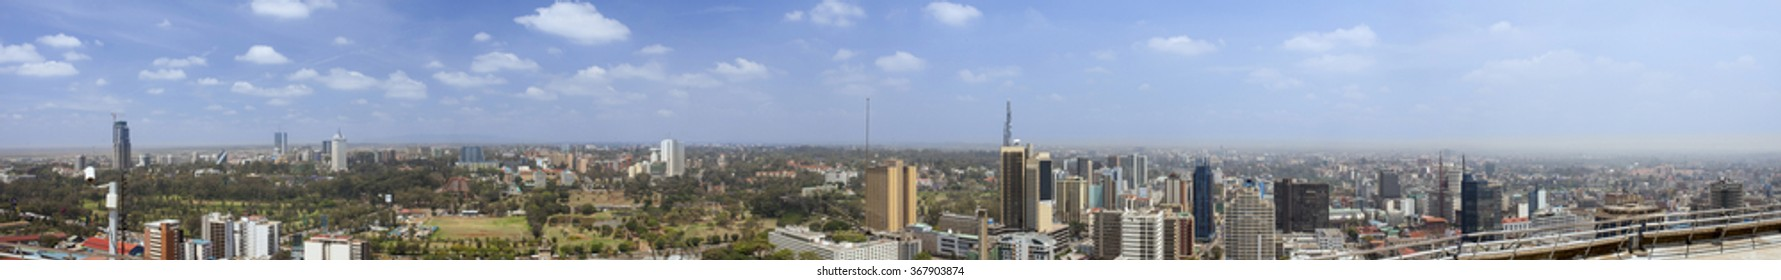 270 degree aerial panorama of Nairobi, Kenya